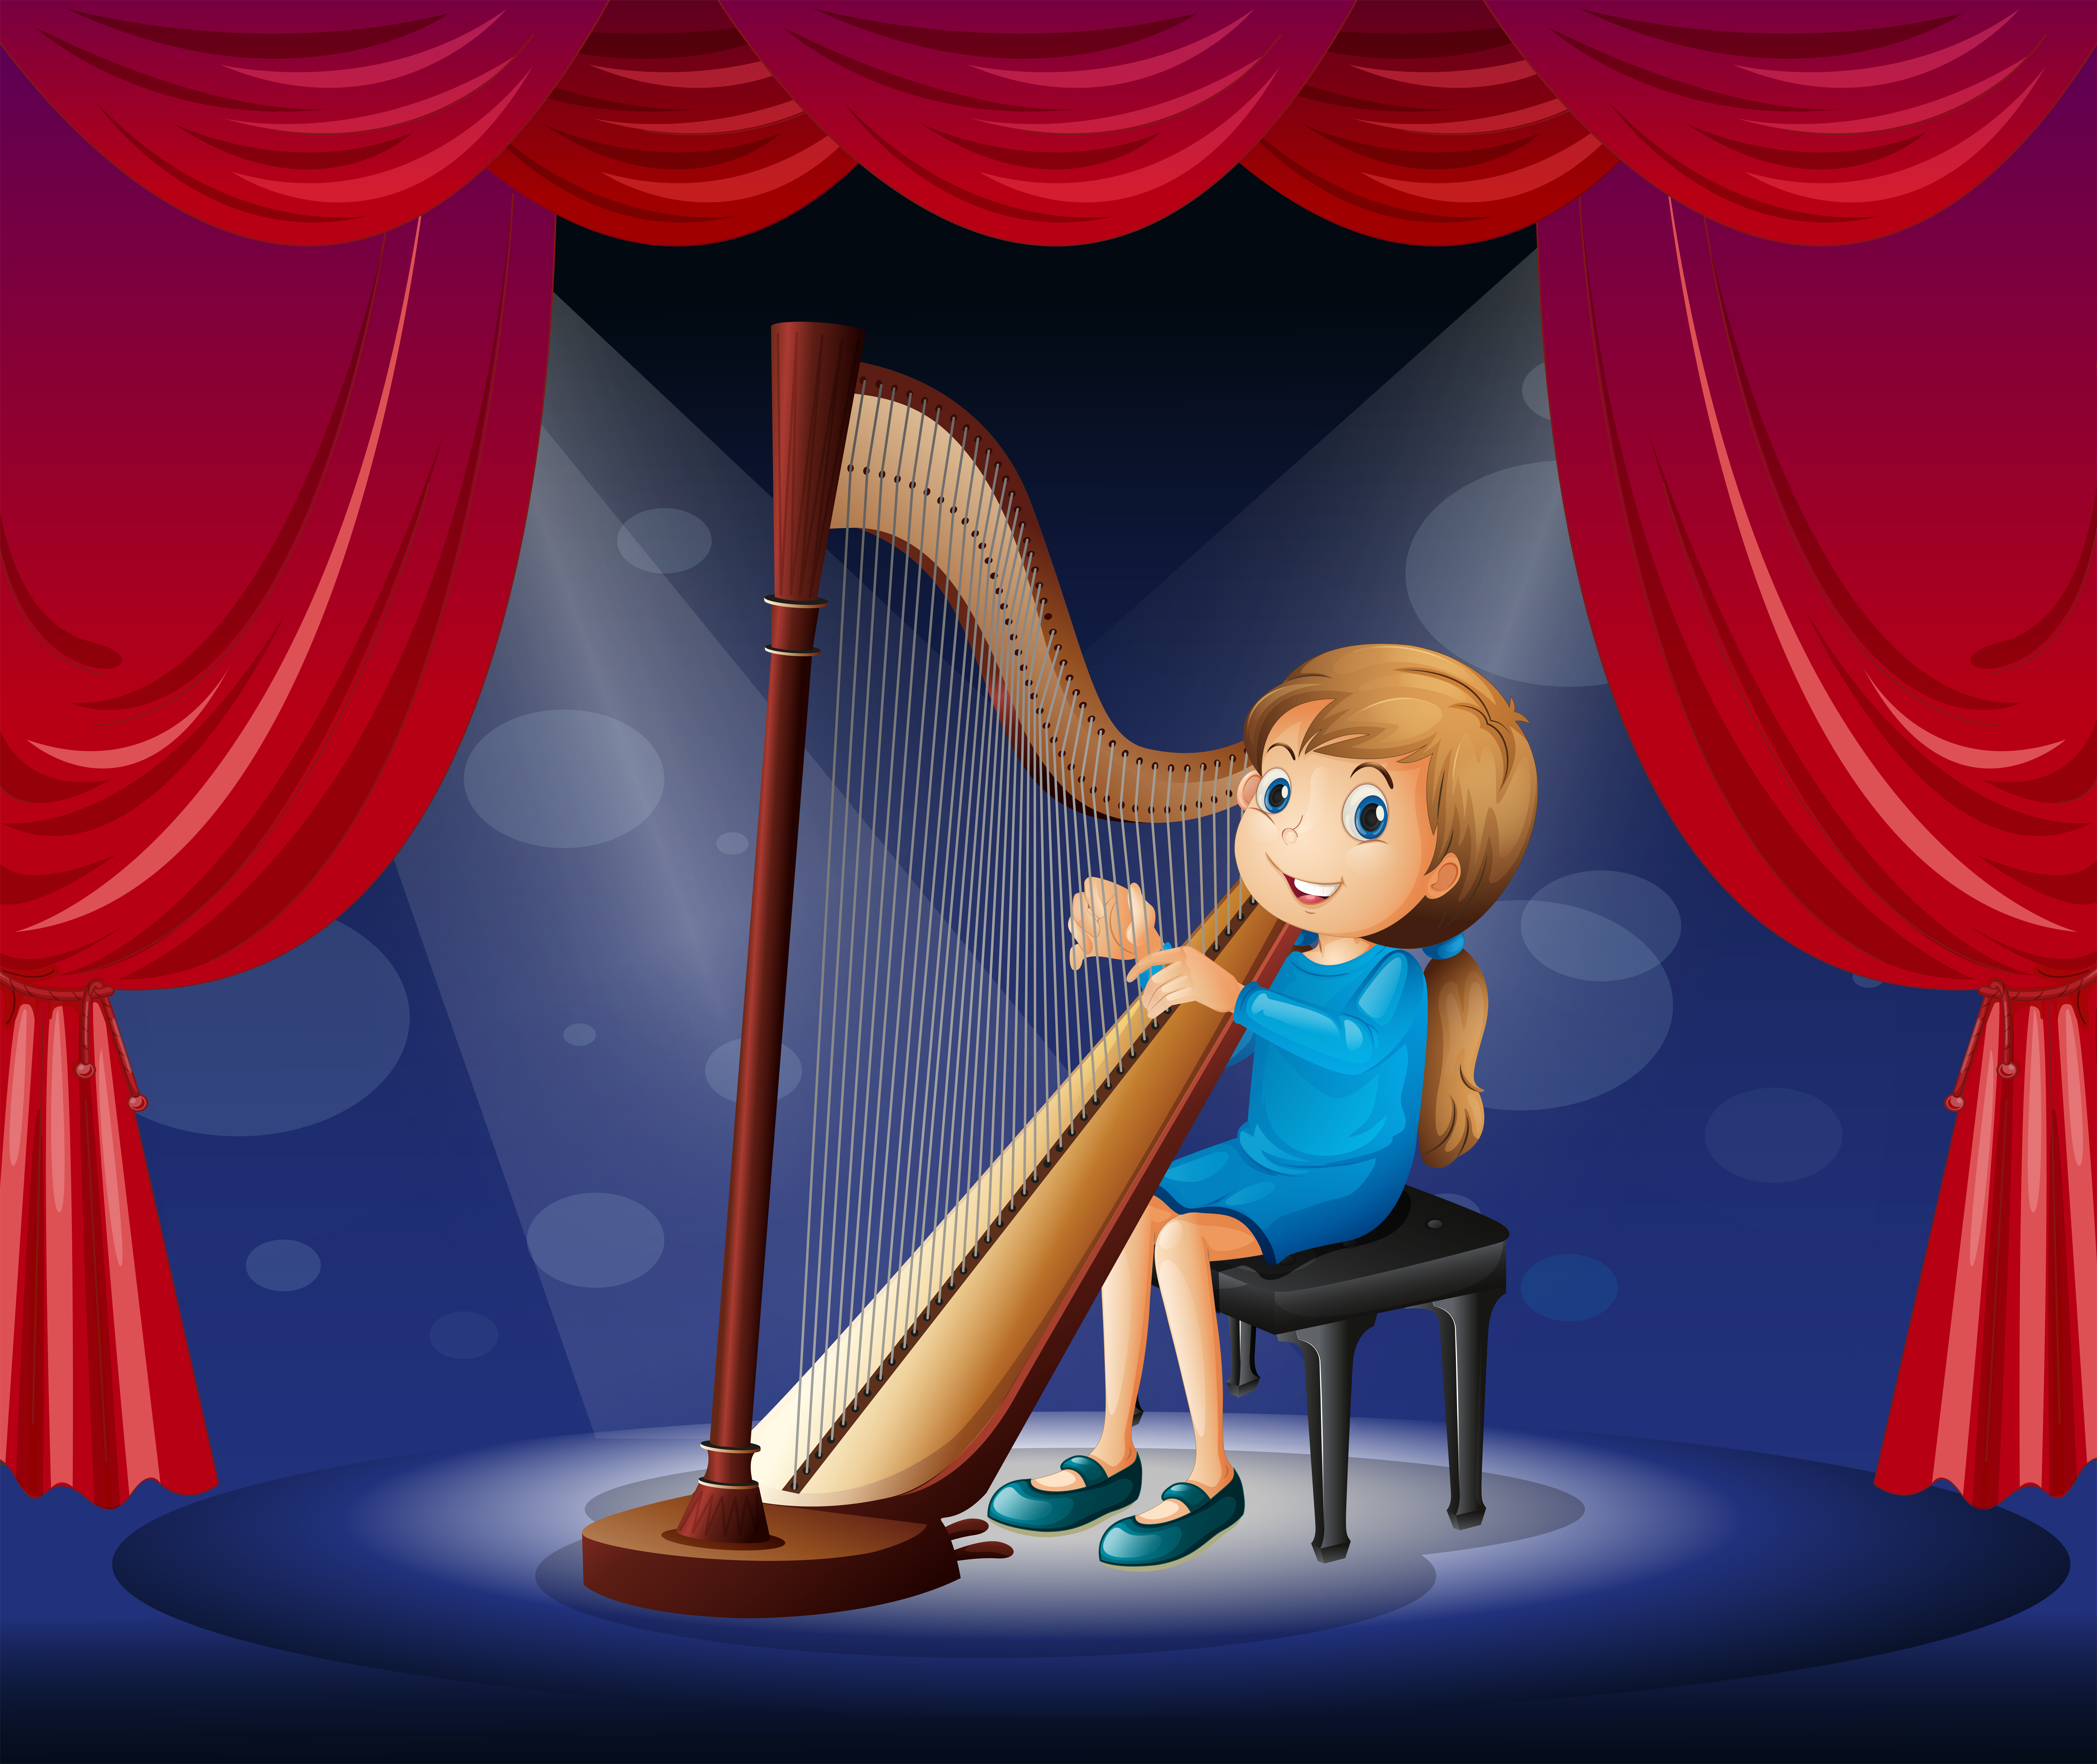 Little Girl Playing Harp On Stage Download Free Vectors